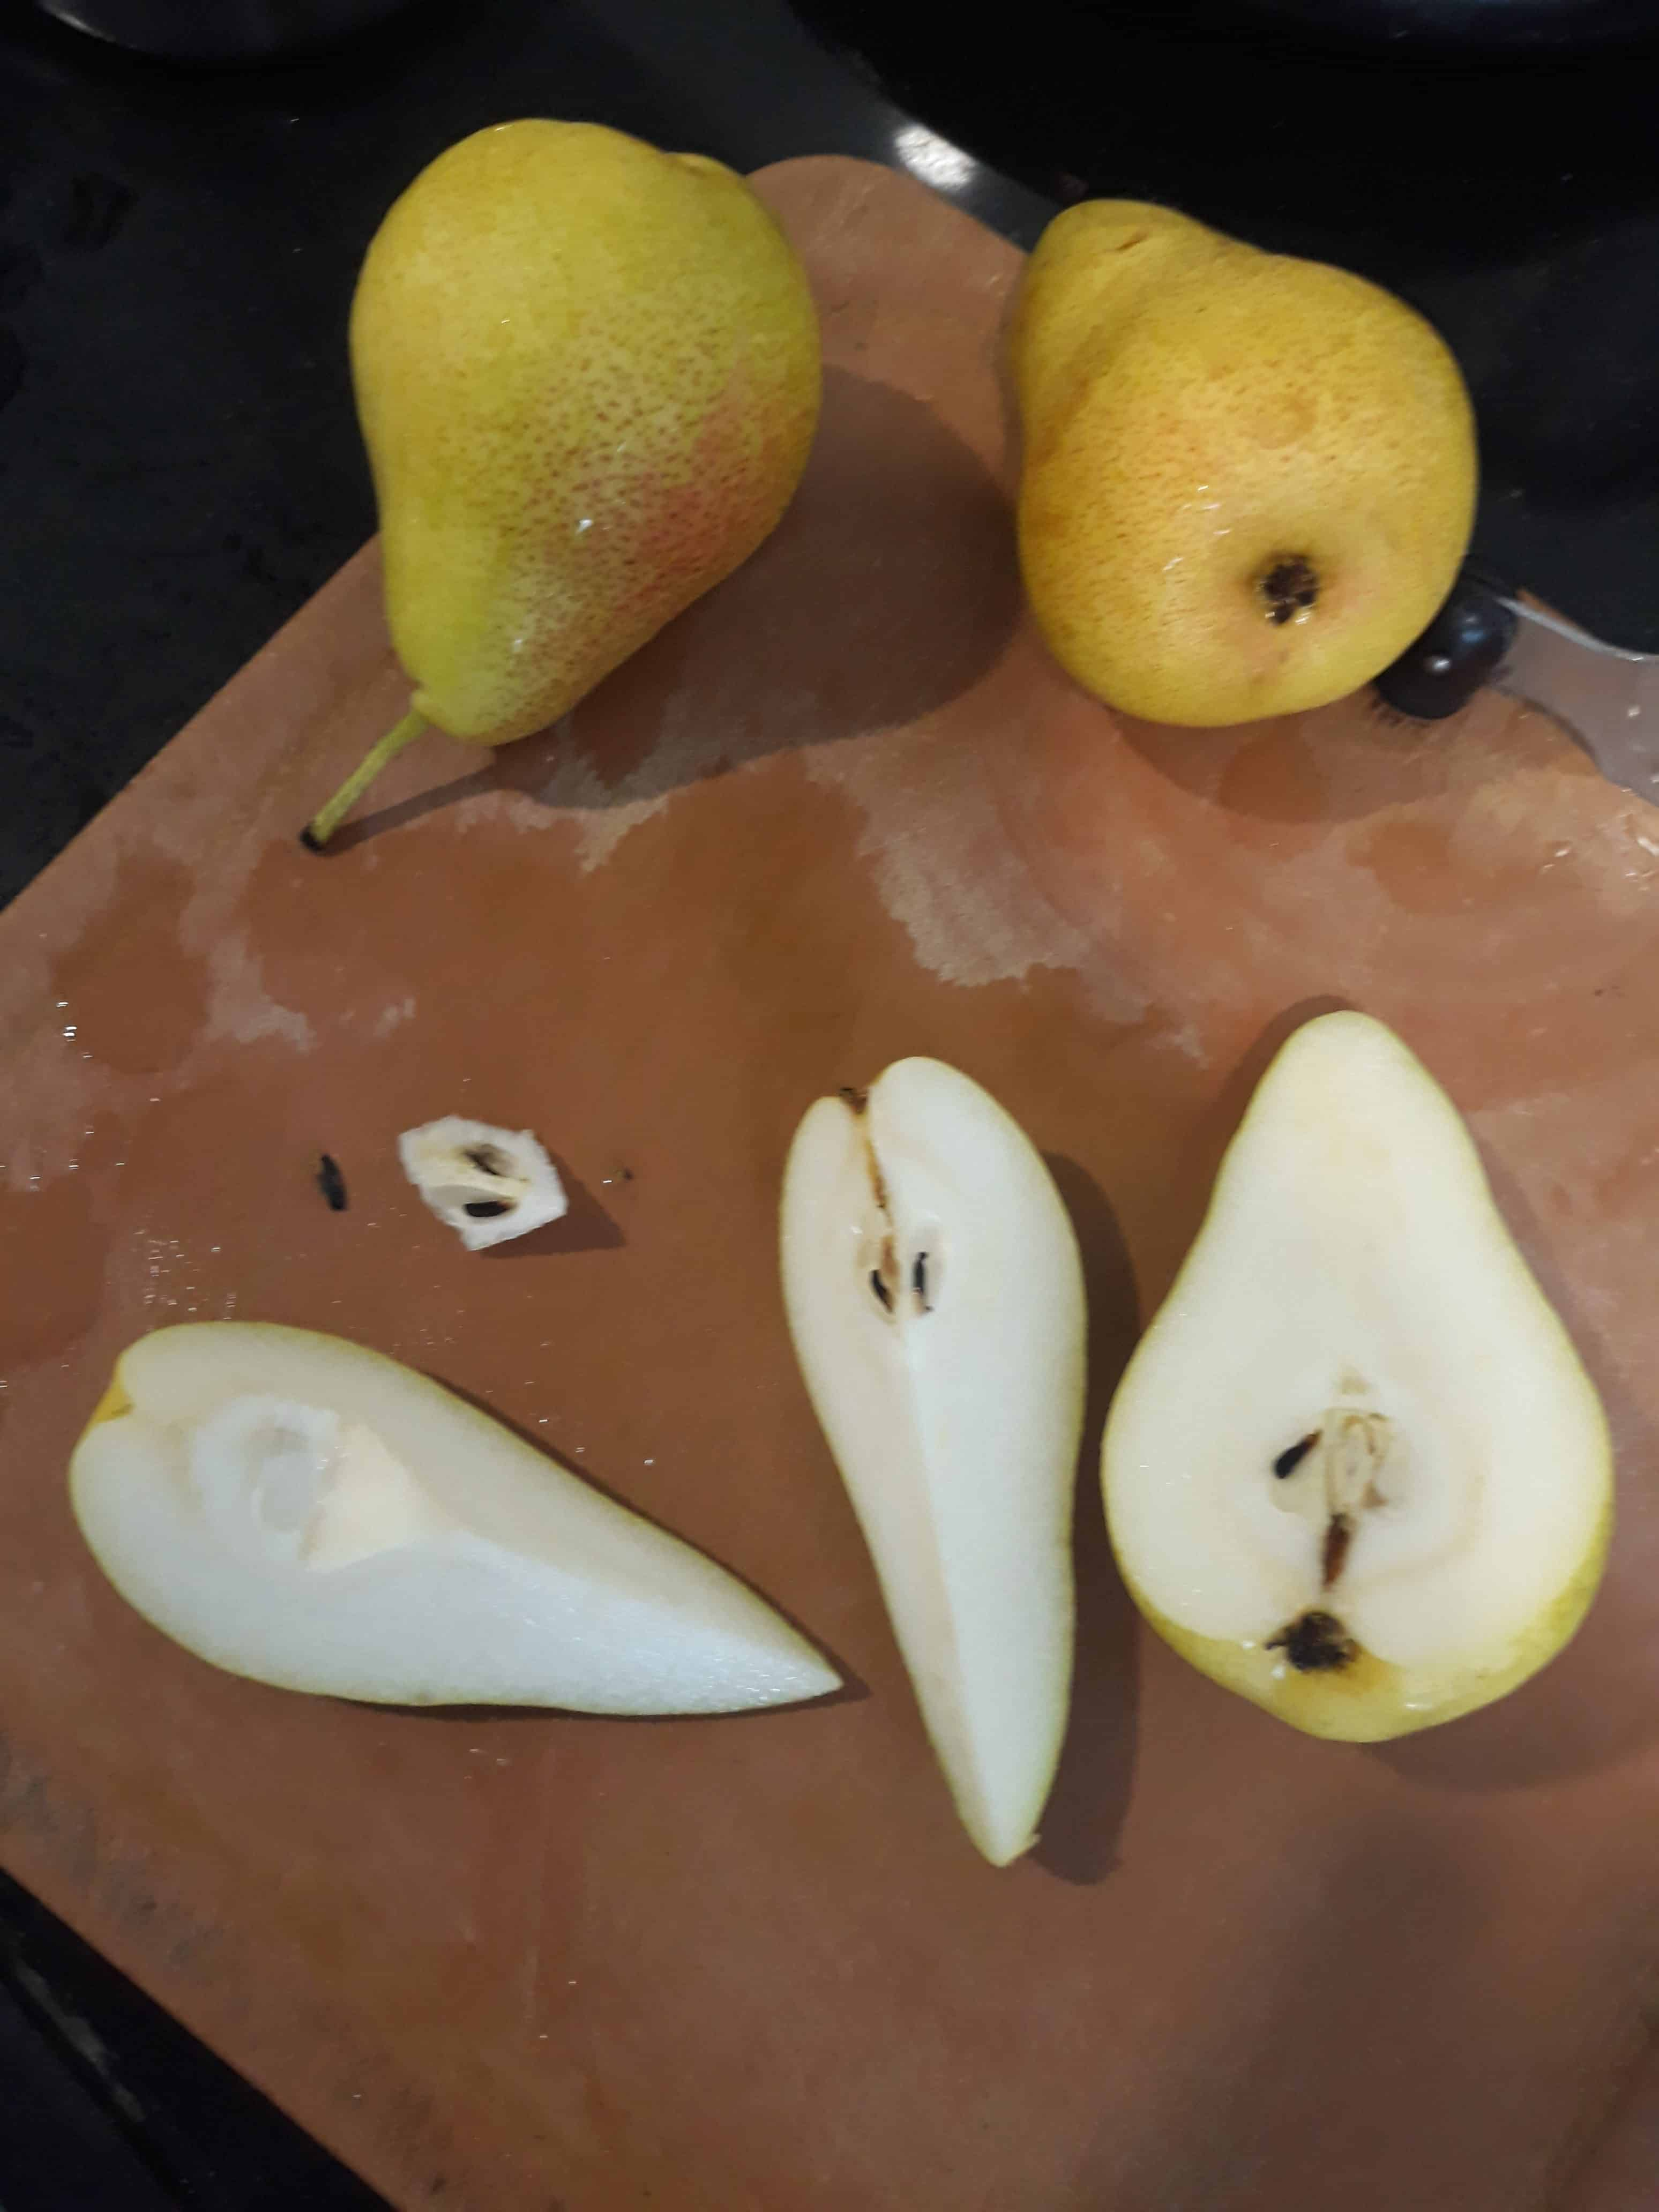 Cutting and Coring Fresh Pears